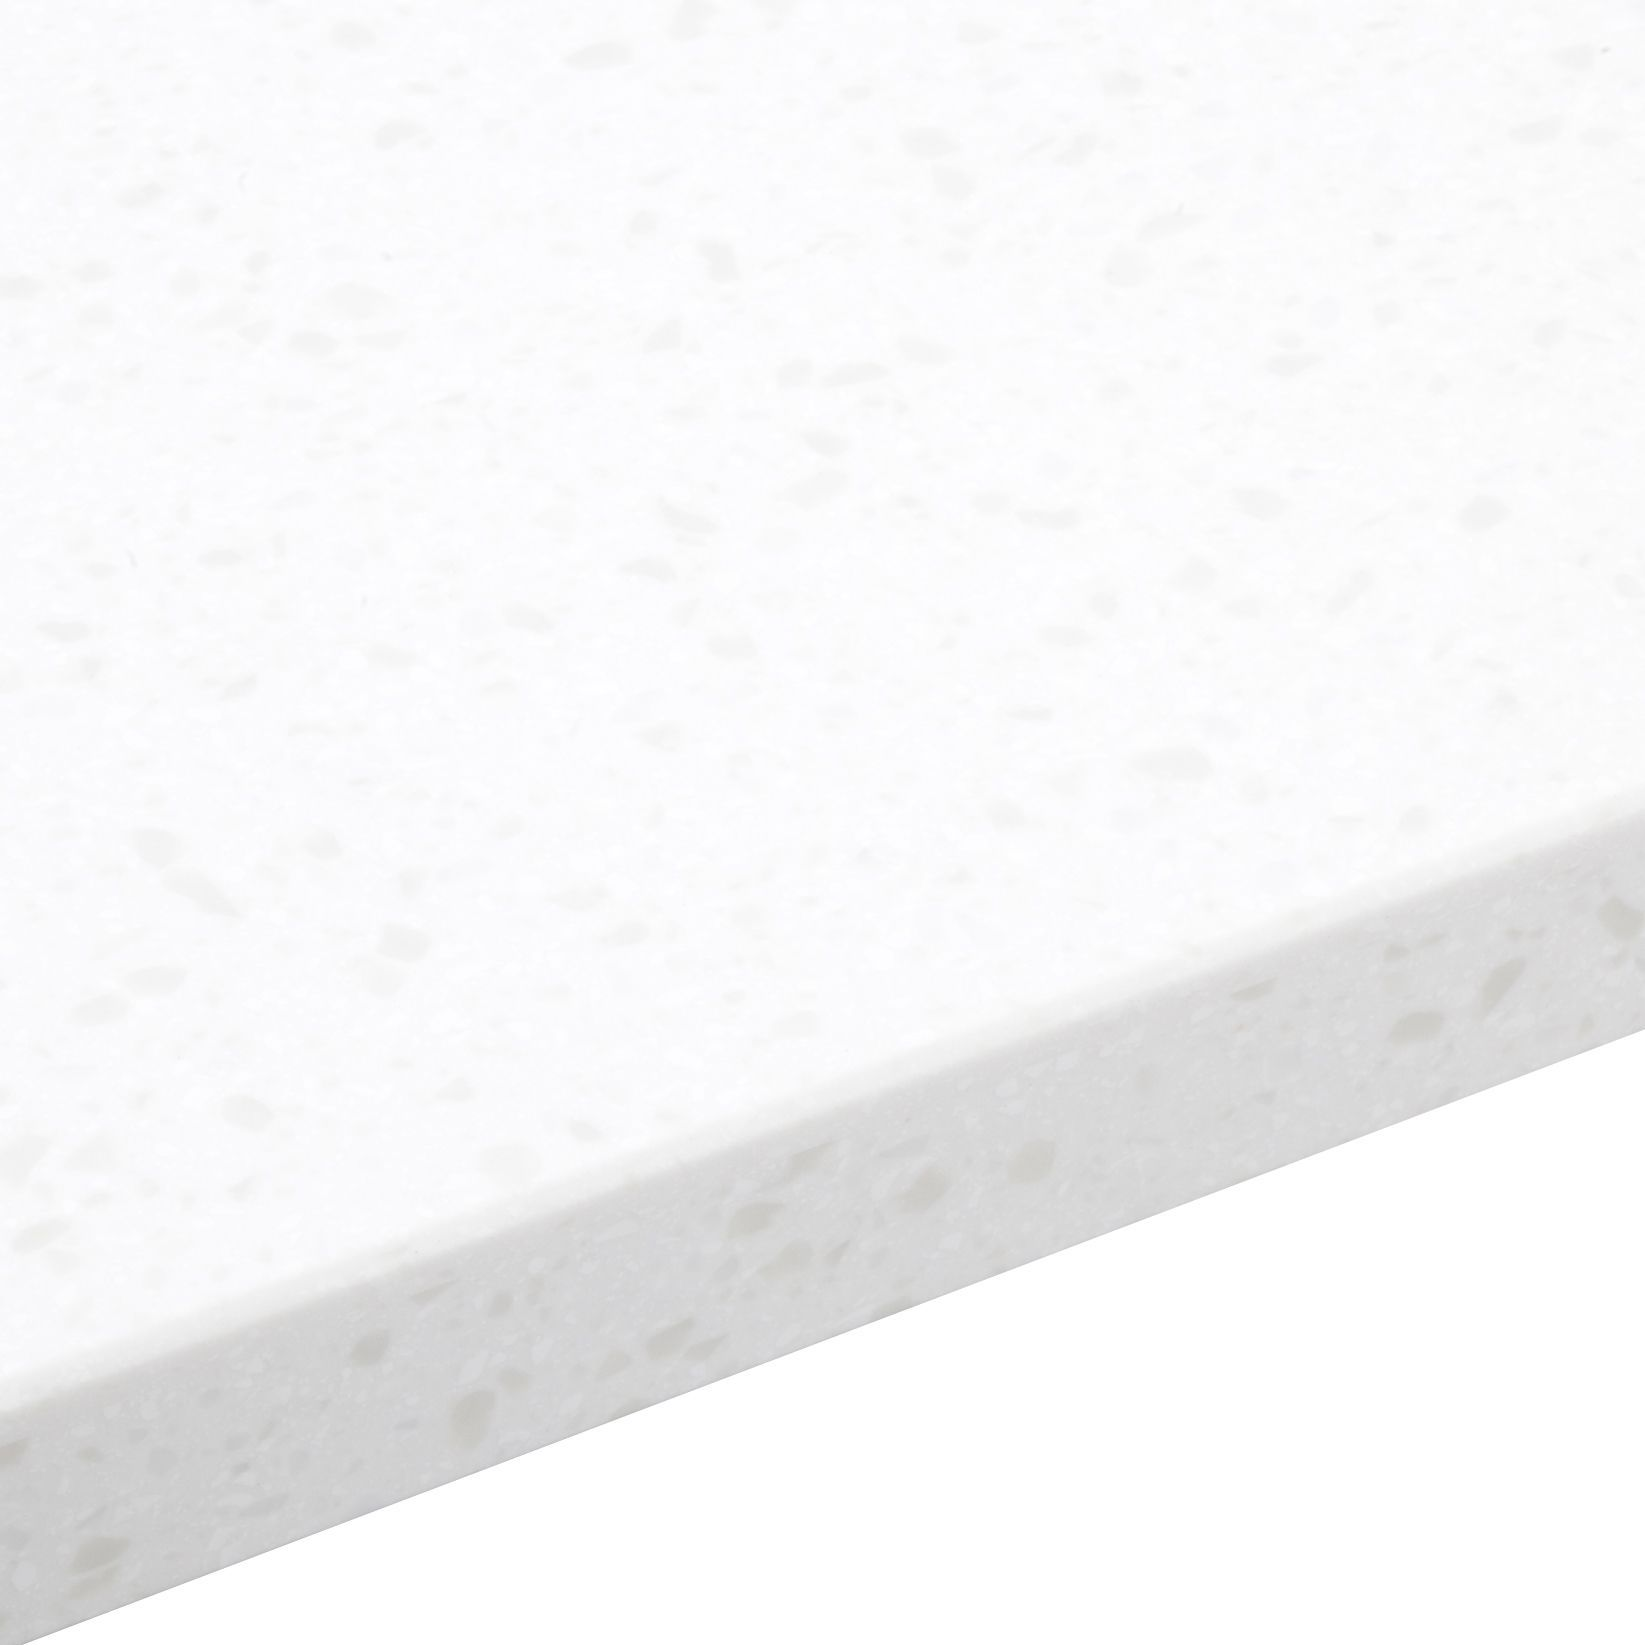 Earthstone Gemini 1.5 bowl White Earthstone Worktop with